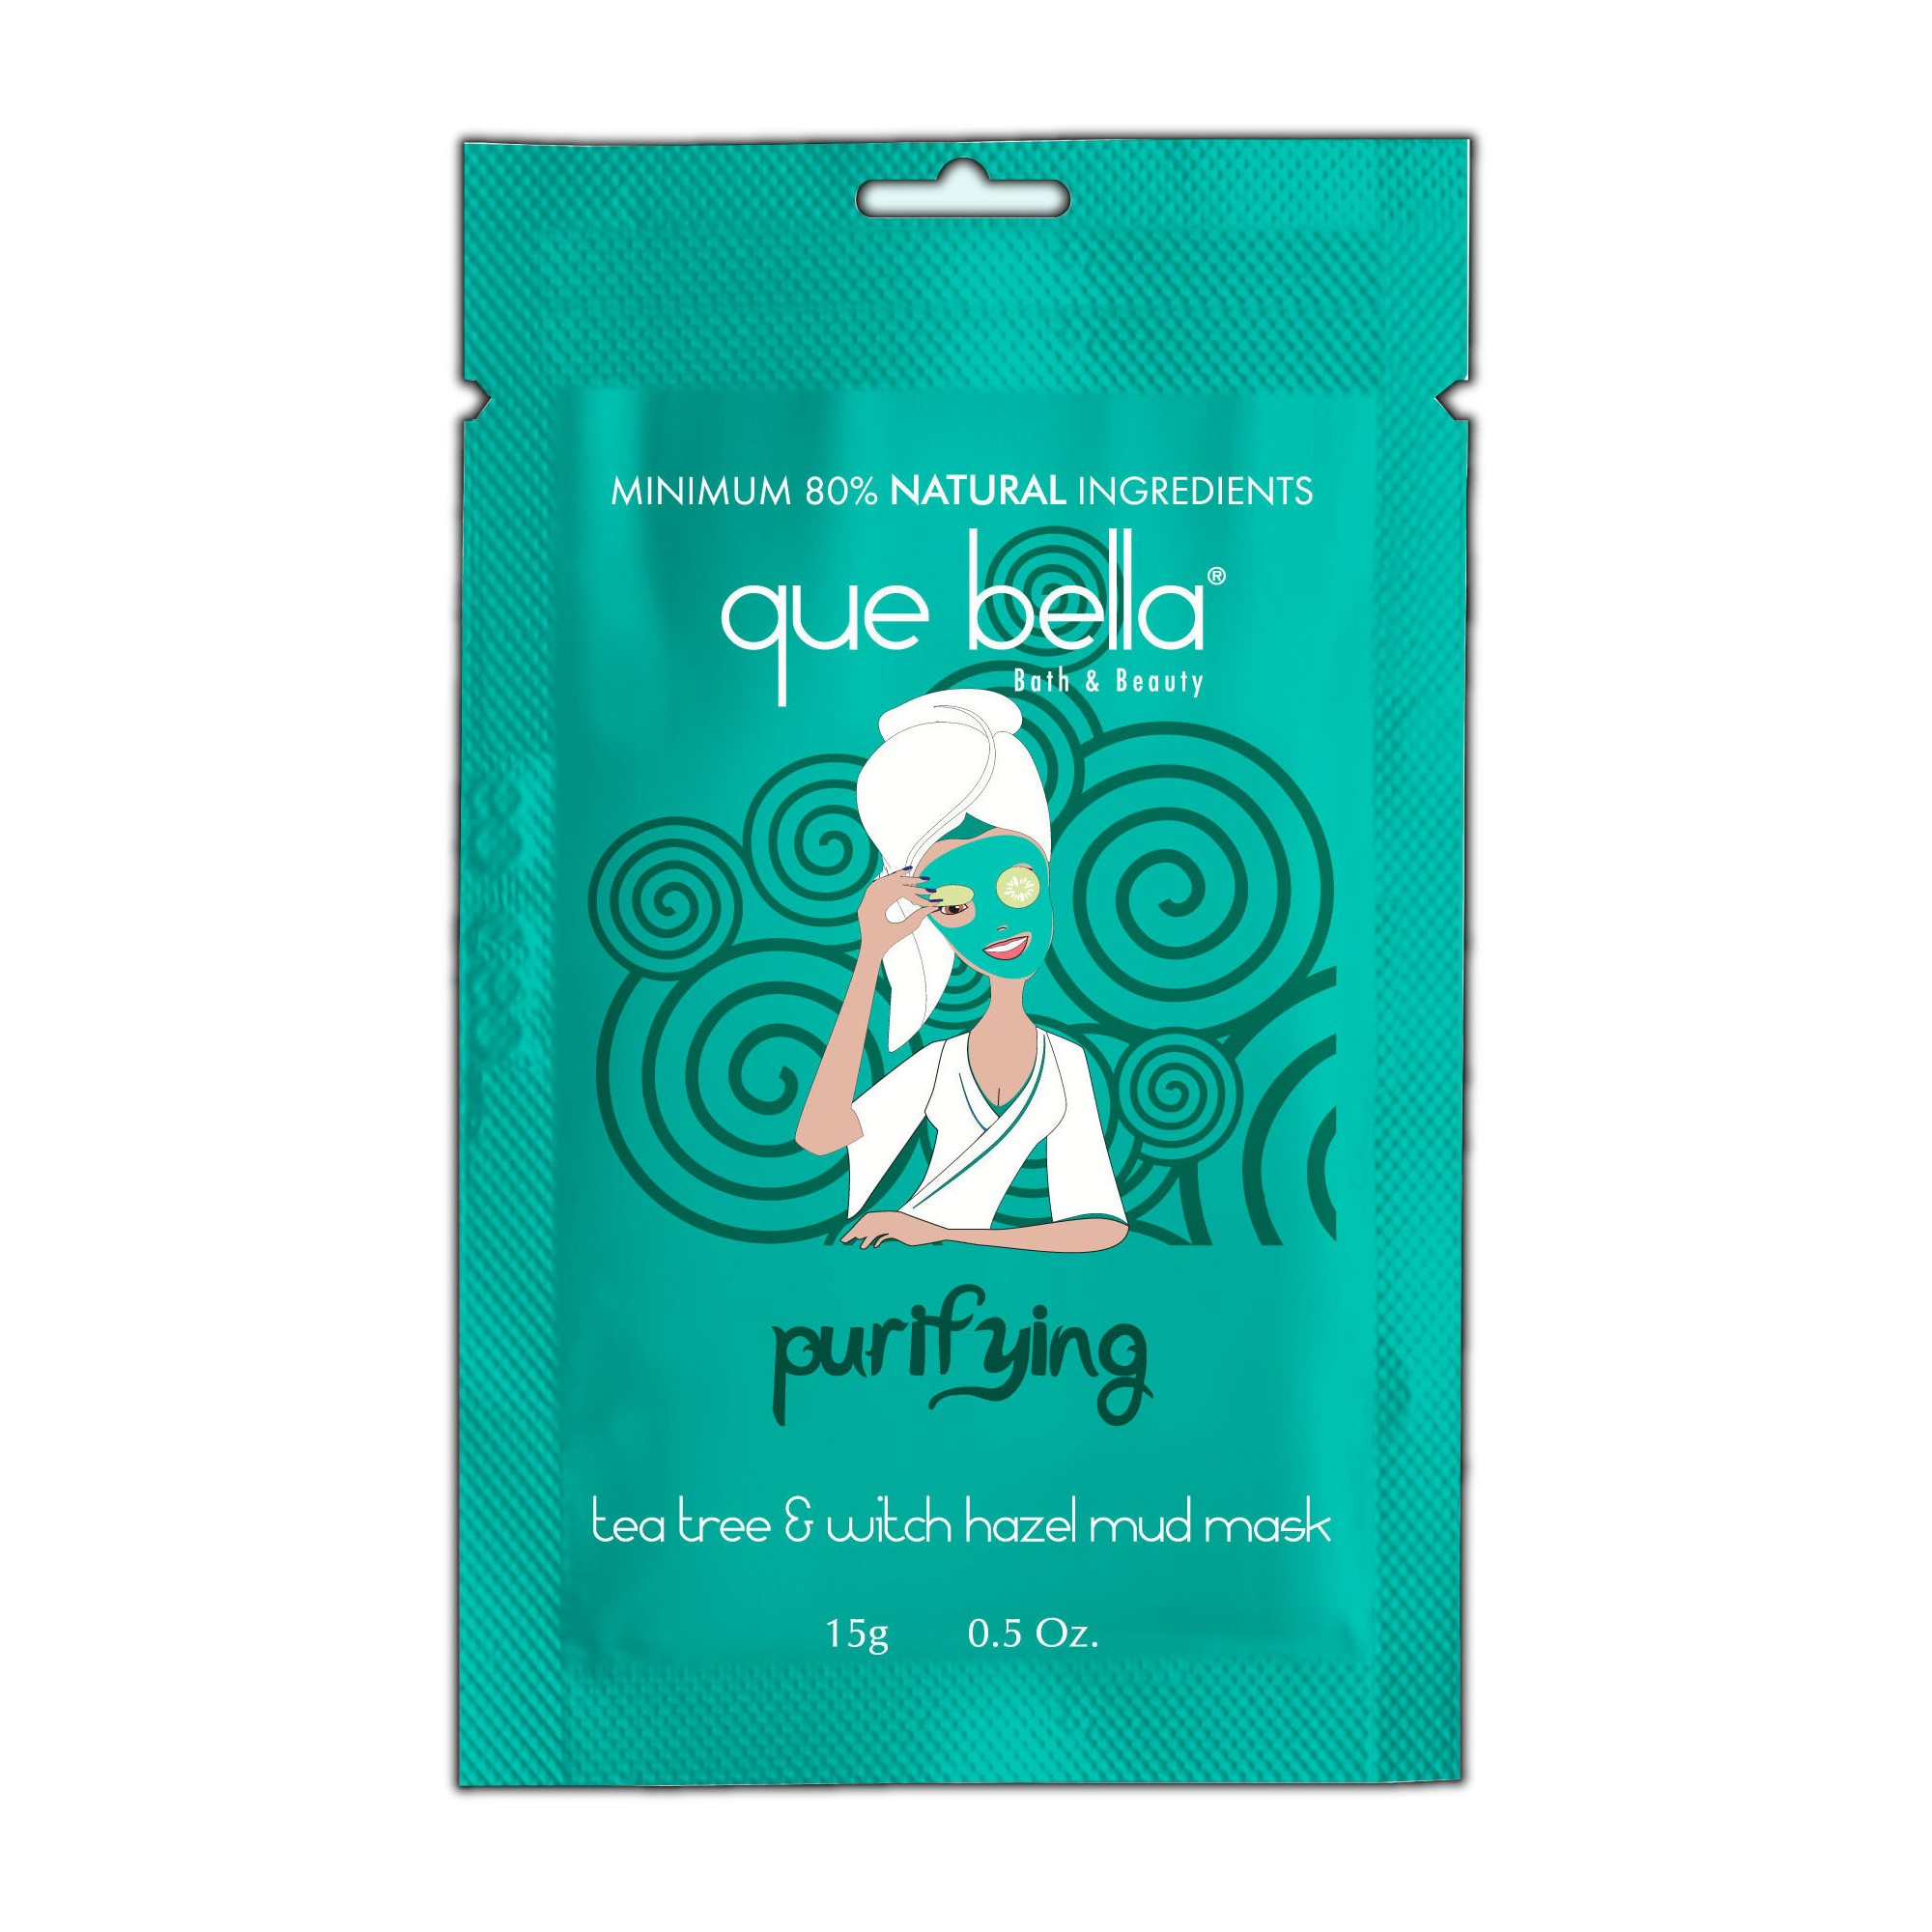 Que Bella Purifying Tea Tree and Witch Hazel Mud Face Mask - 0.5oz